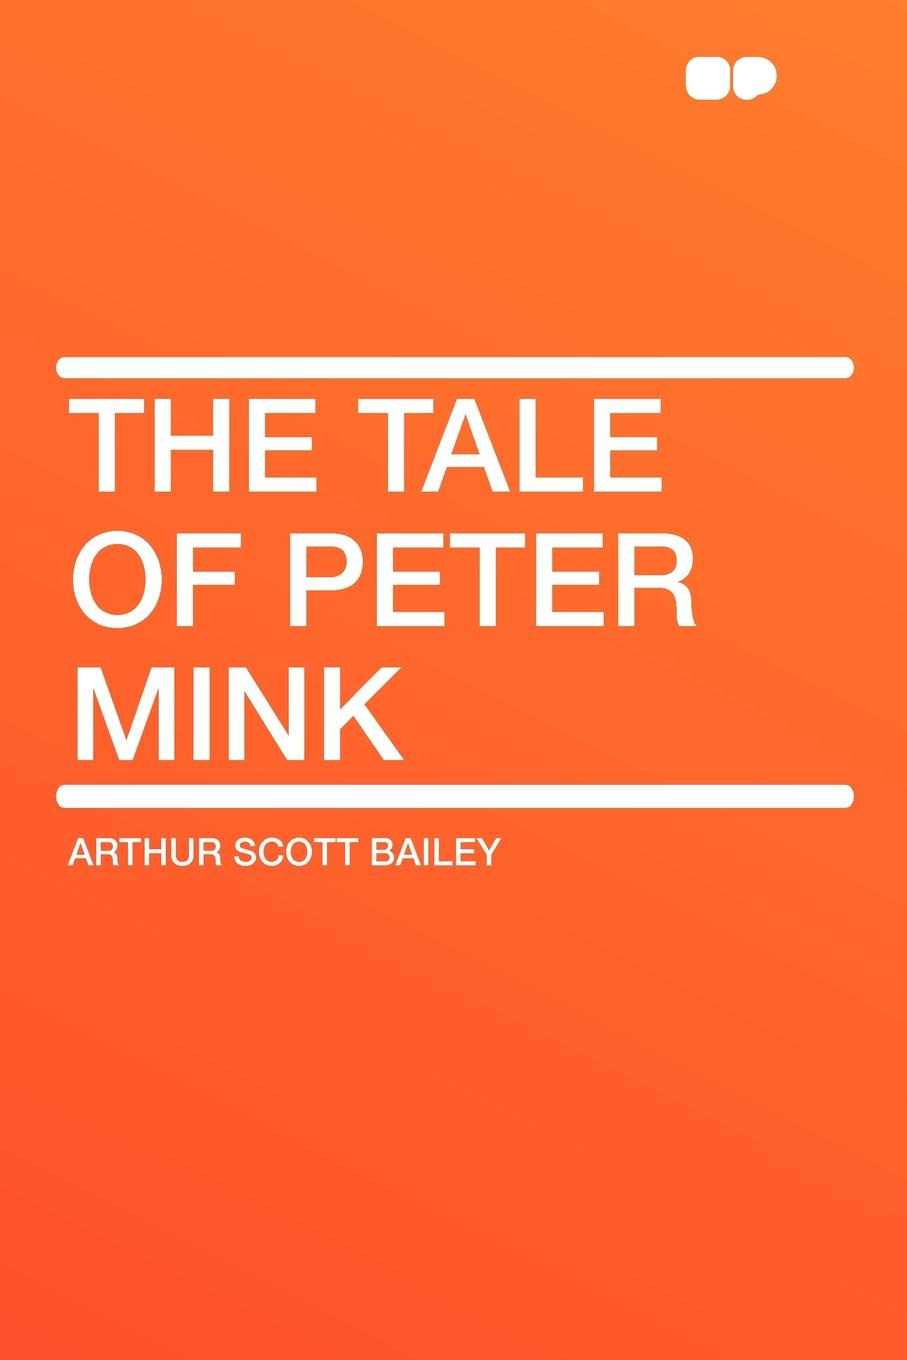 лучшая цена Arthur Scott Bailey The Tale of Peter Mink